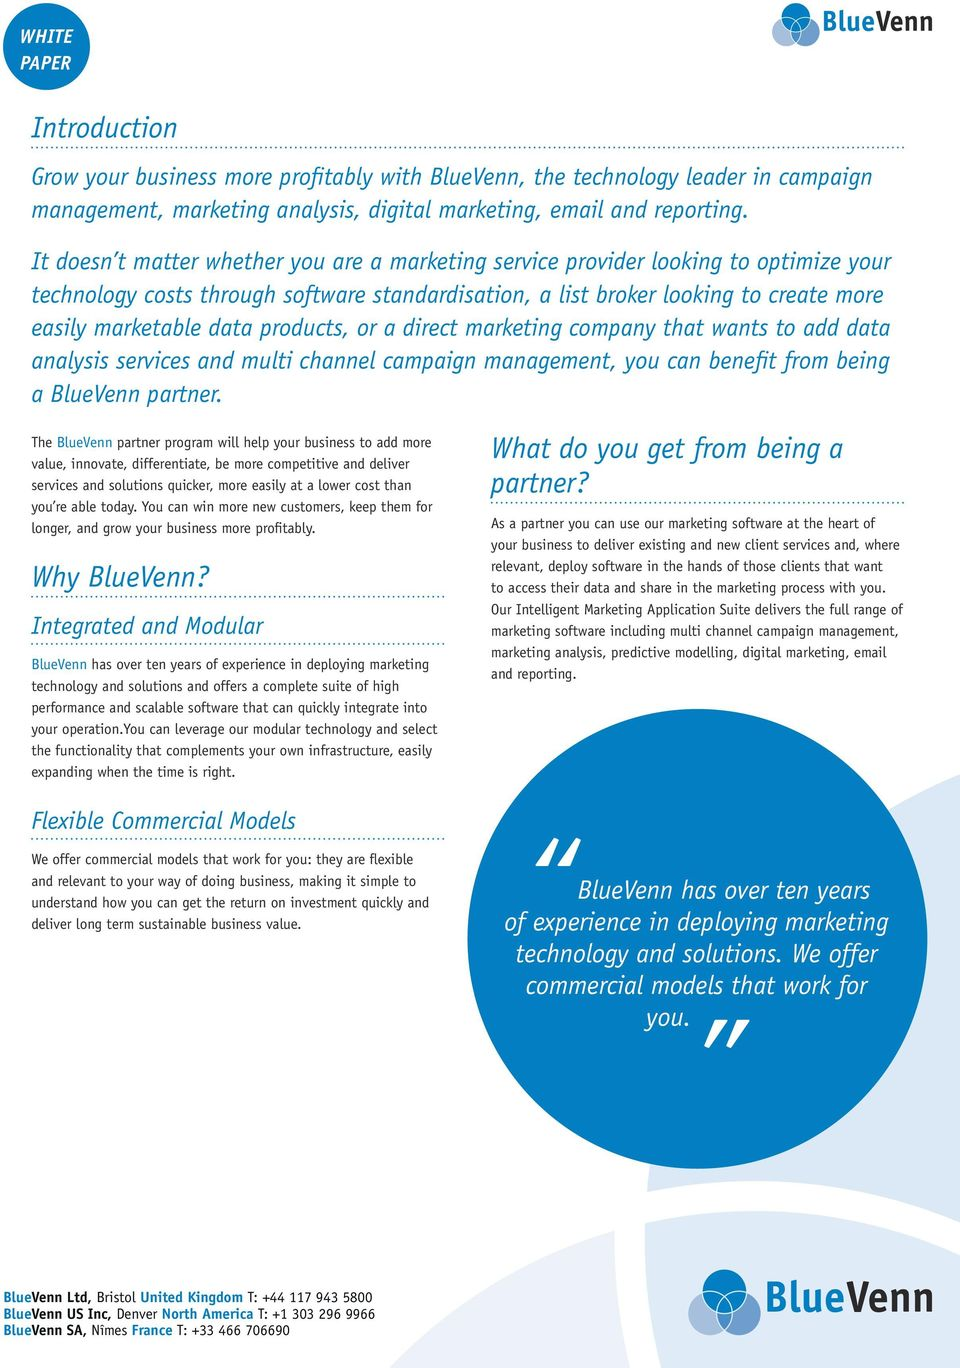 products, or a direct marketing company that wants to add data analysis services and multi channel campaign management, you can benefit from being a BlueVenn partner.